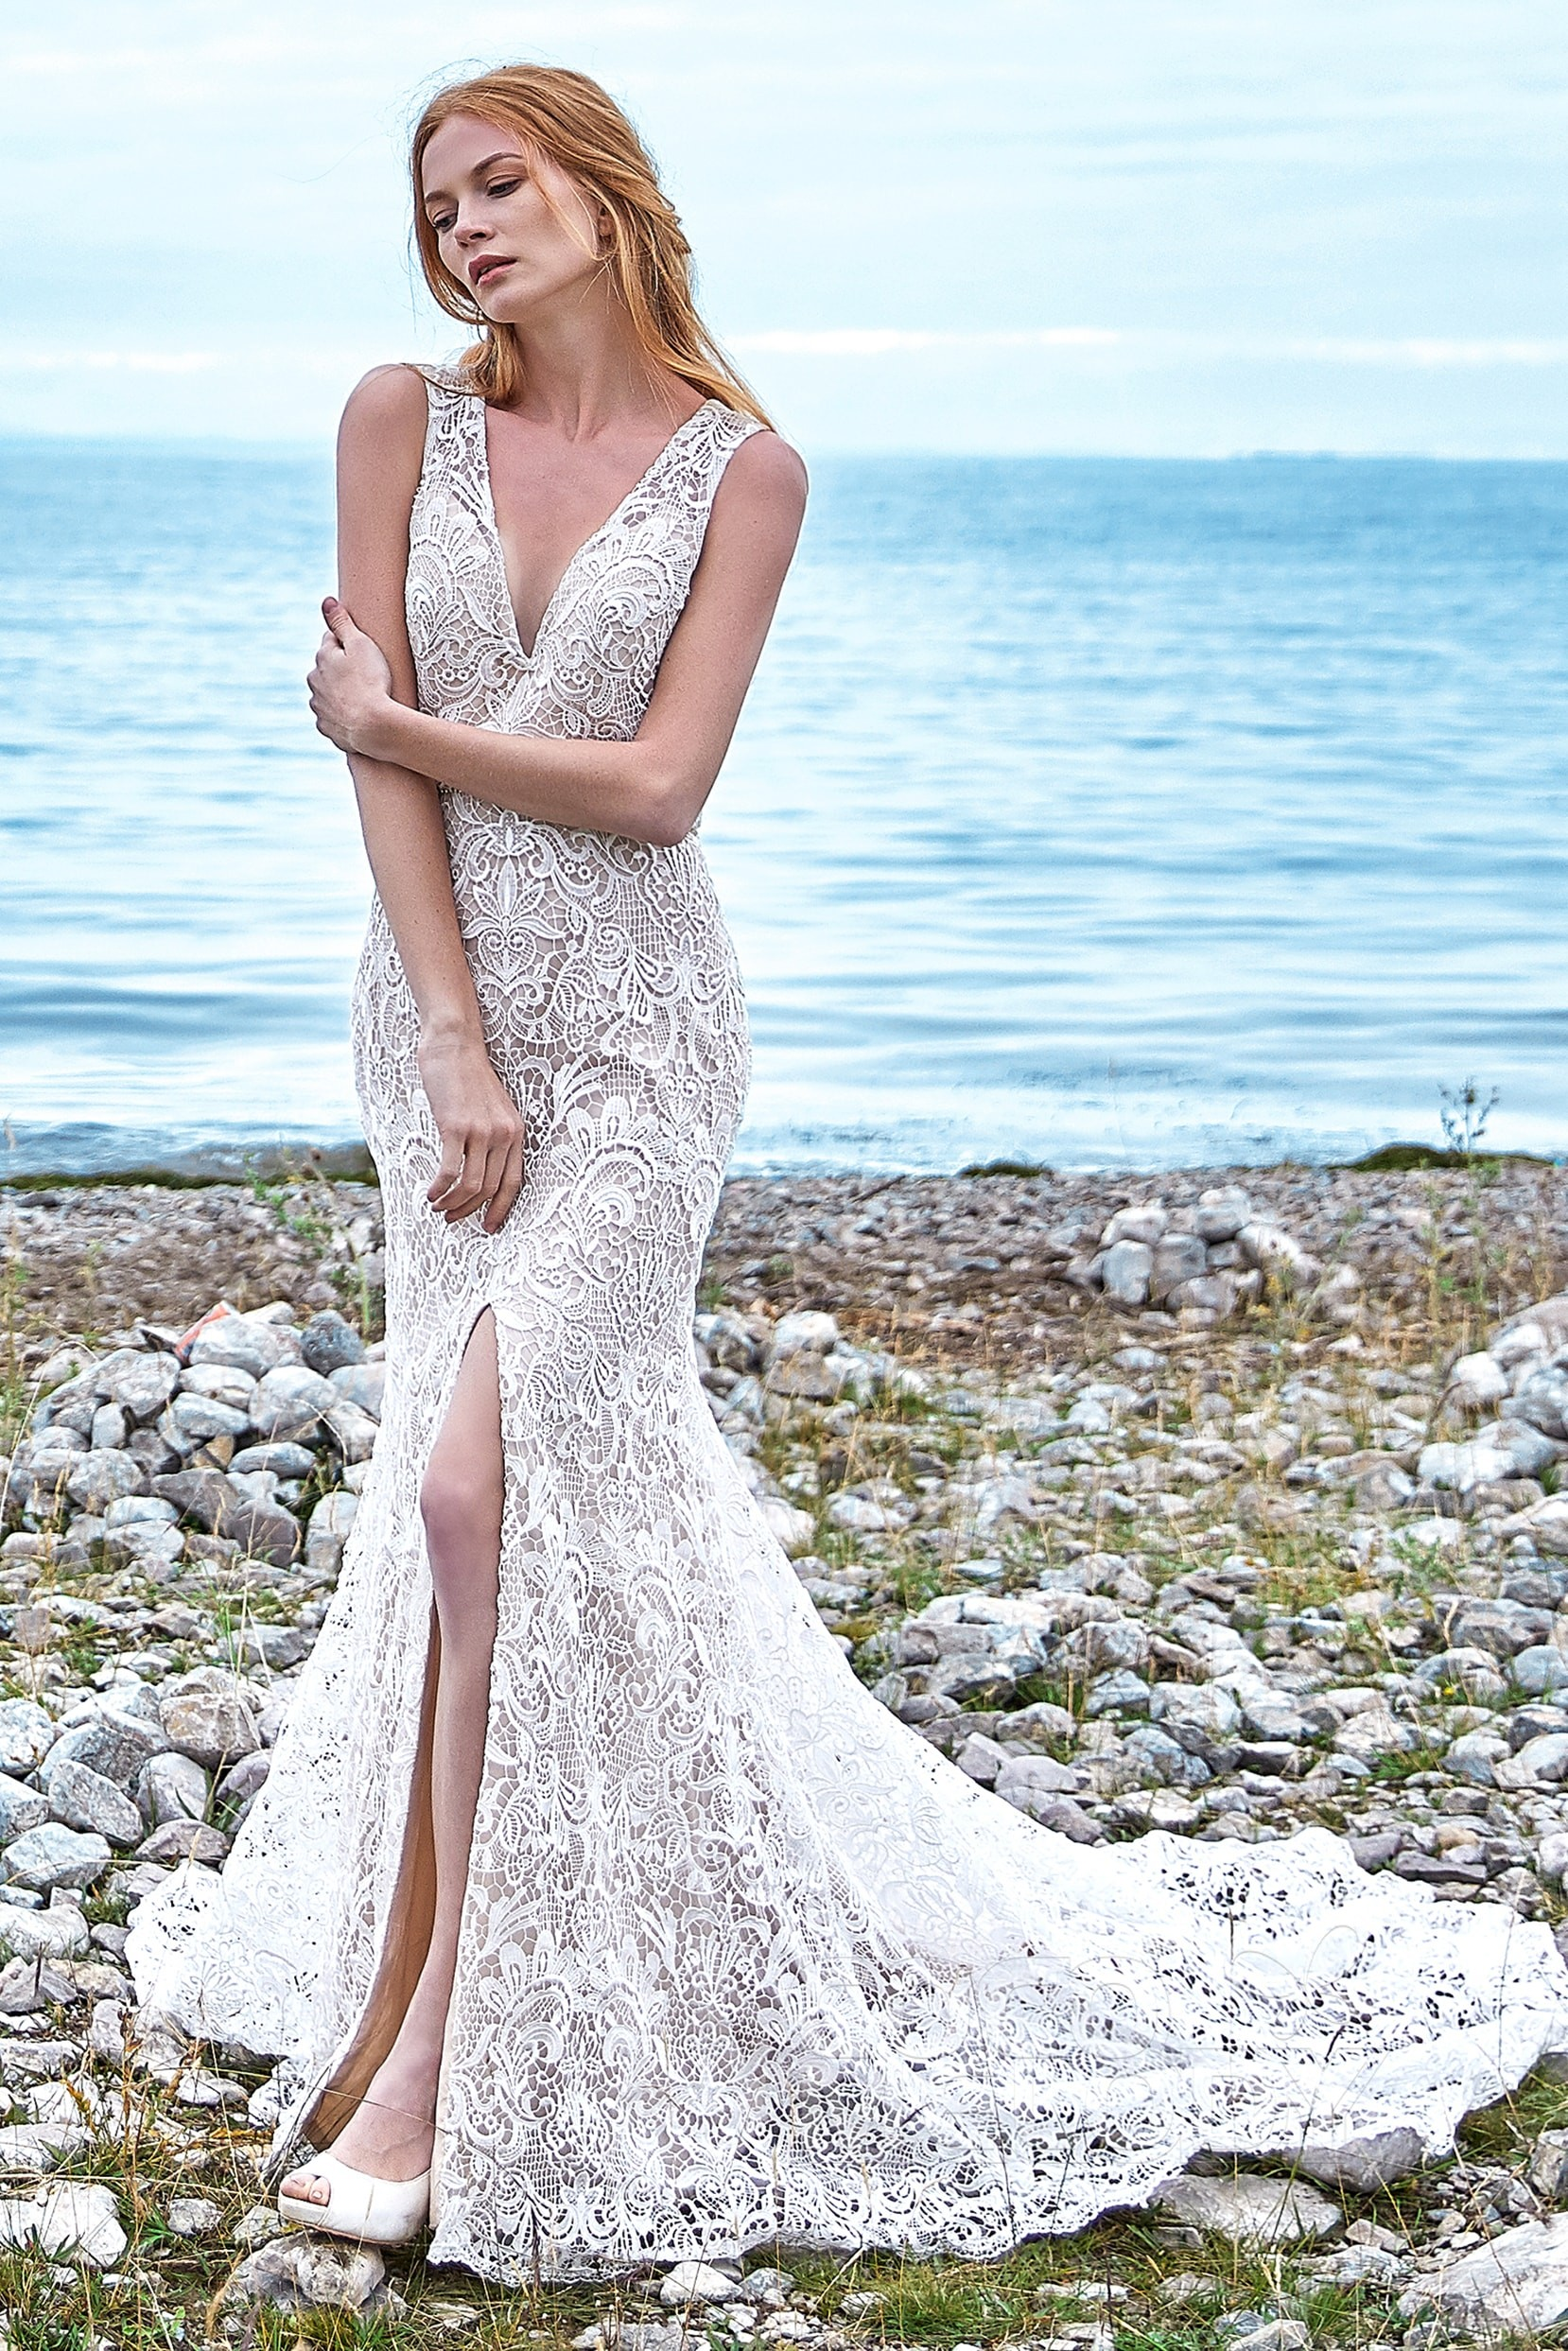 wedding dresses silver wedding dresses wedding dresses bridal gowns wedding gowns silver wedding dress beautiful silver and